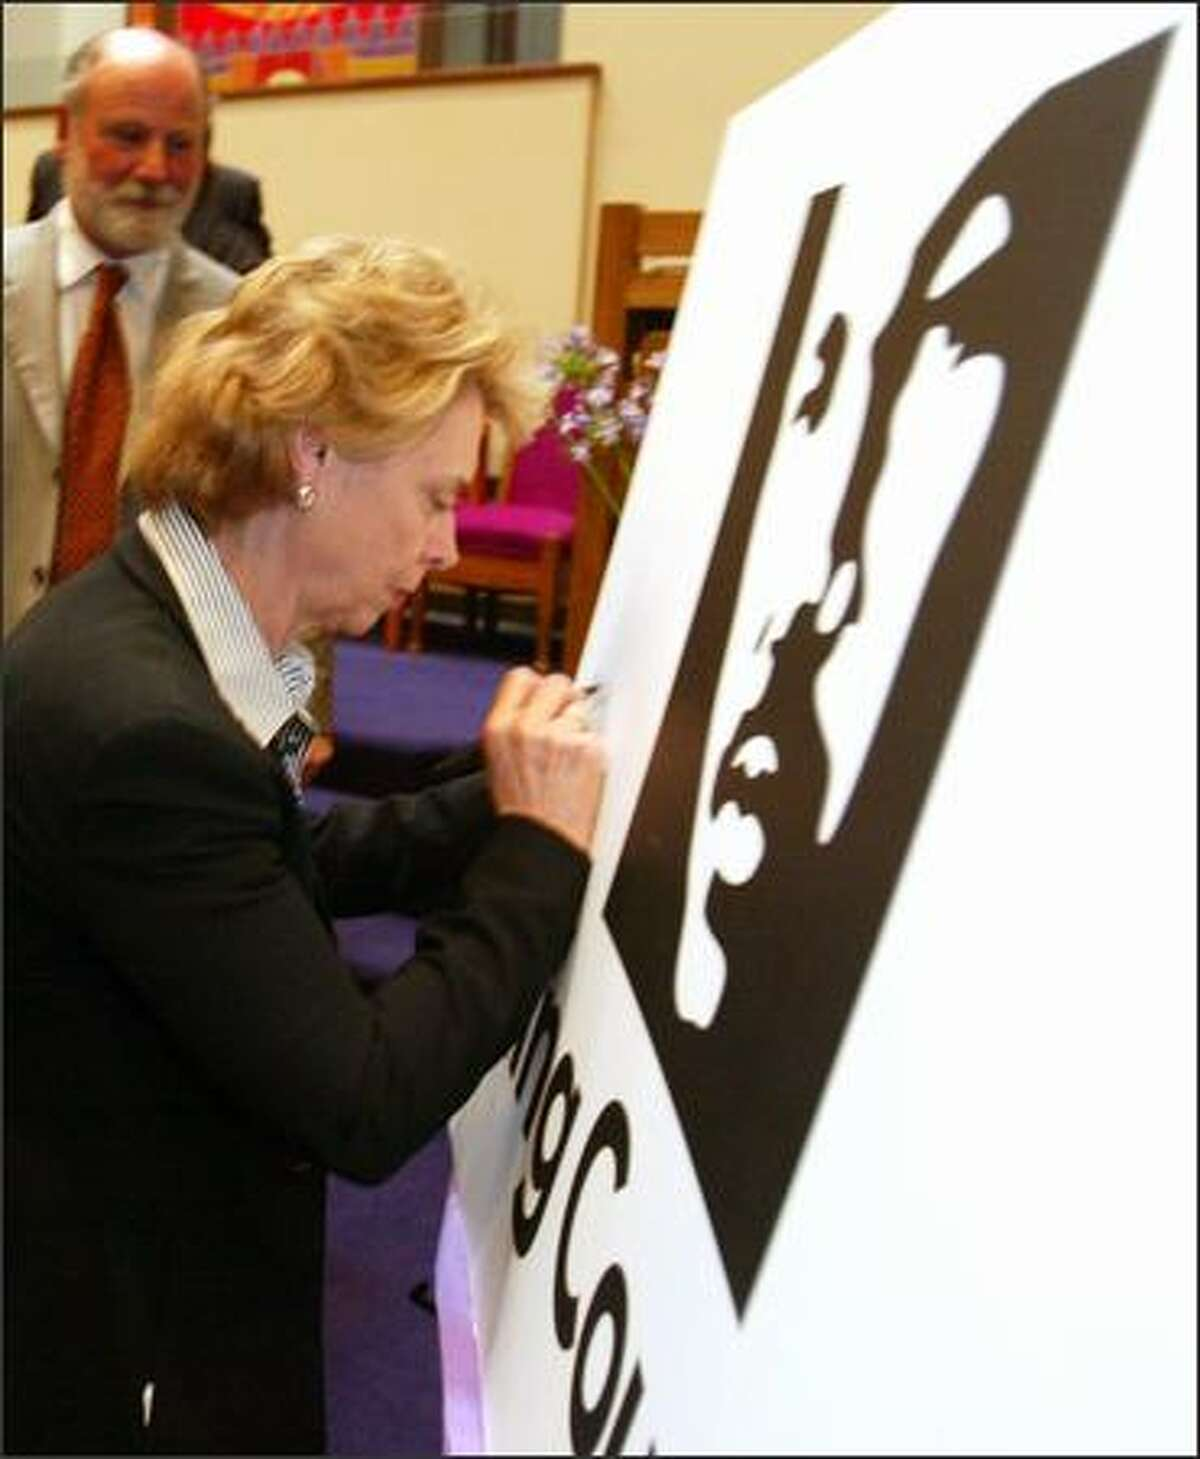 Gov. Chris Gregoire signs a poster showing the proposed new logo for King County, which depicts the county's namesake, the Rev. Martin Luther King Jr. The logo was unveiled at Mount Zion Baptist Church in Seattle on Sunday.